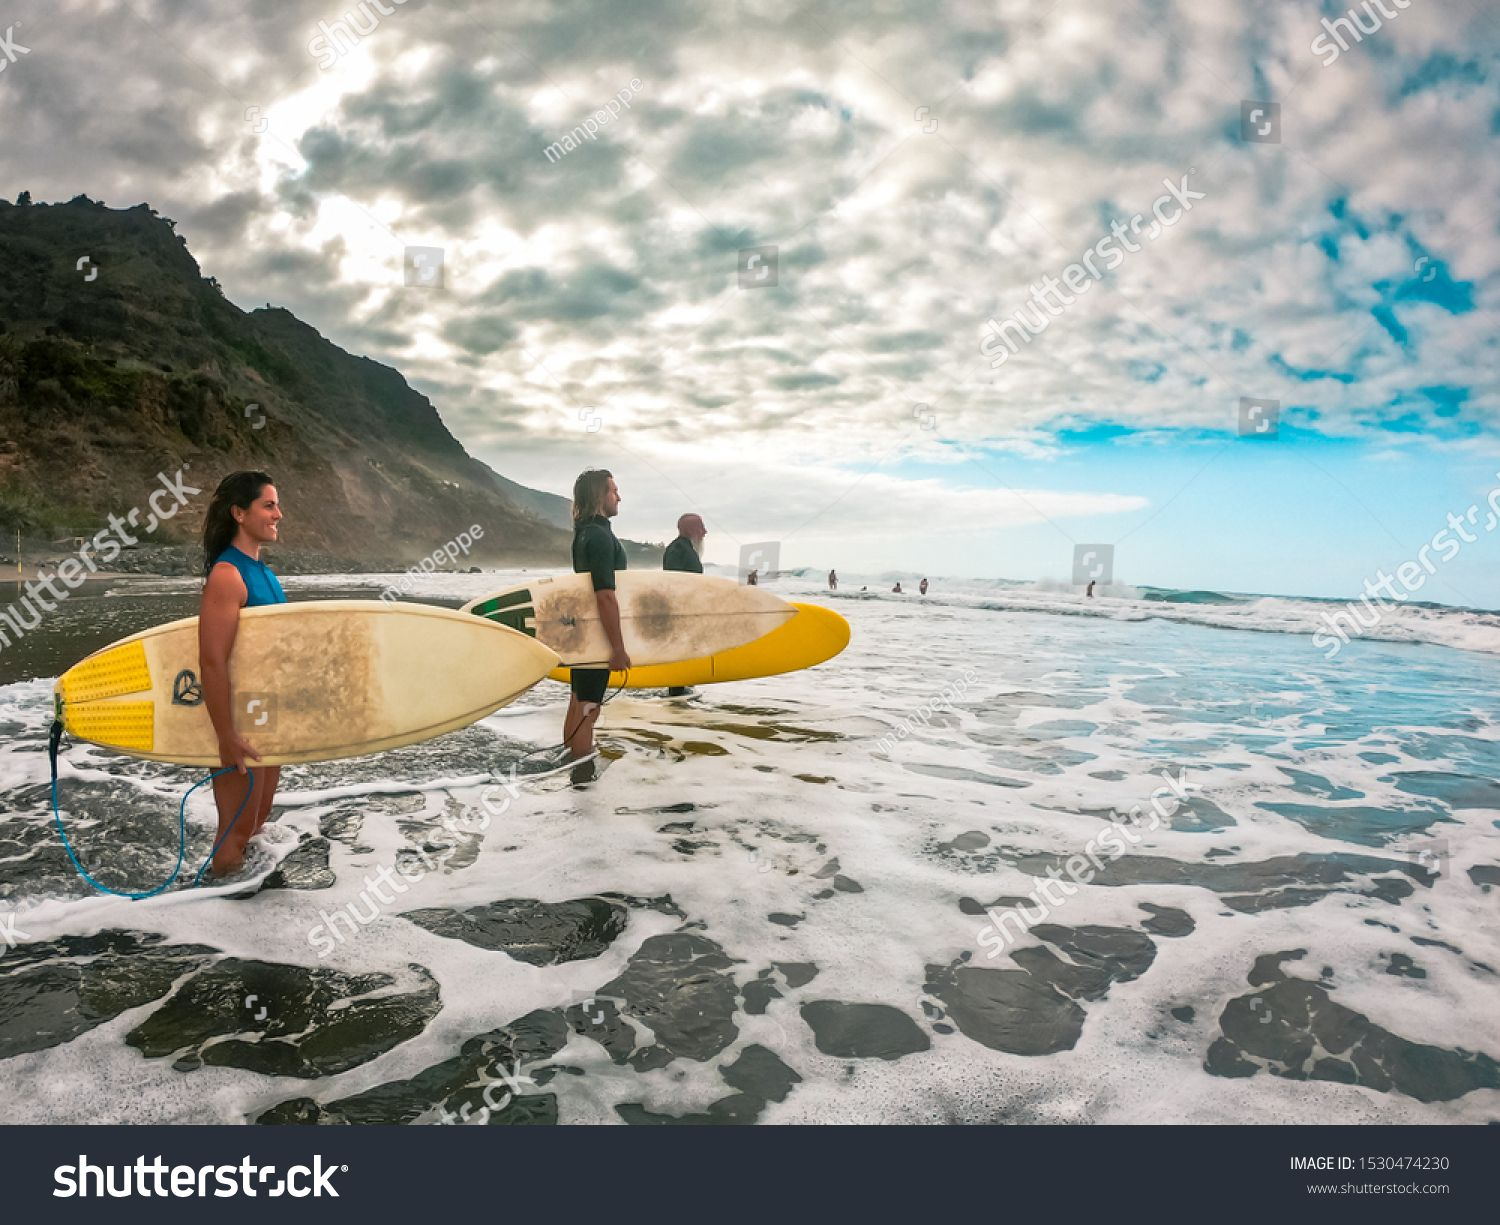 Men and a woman are standing with a surfboard in hand by